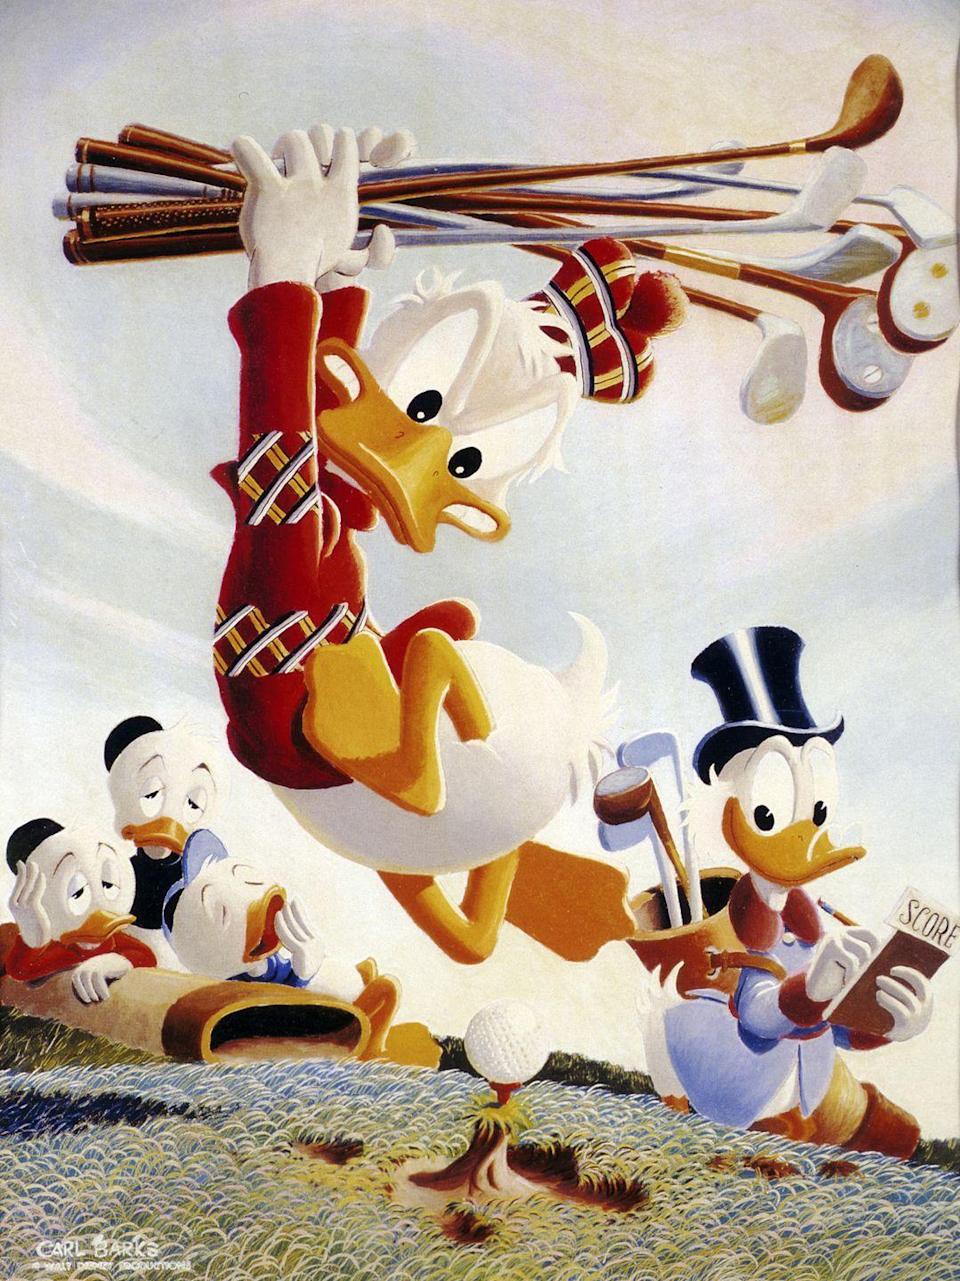 <p>Donald remained the top 10. Could this have anything to do with Walt Disney? Probably. In 1938, the company released <em>Donald's Nephews</em>, an animated cartoon which features Donald Duck being visited by his three nephews, Huey, Dewey, and Louie. Meanwhile, Robert, James, John, Mary, Barbara and Patricia prove consistency was a trend in the 1930s.</p>